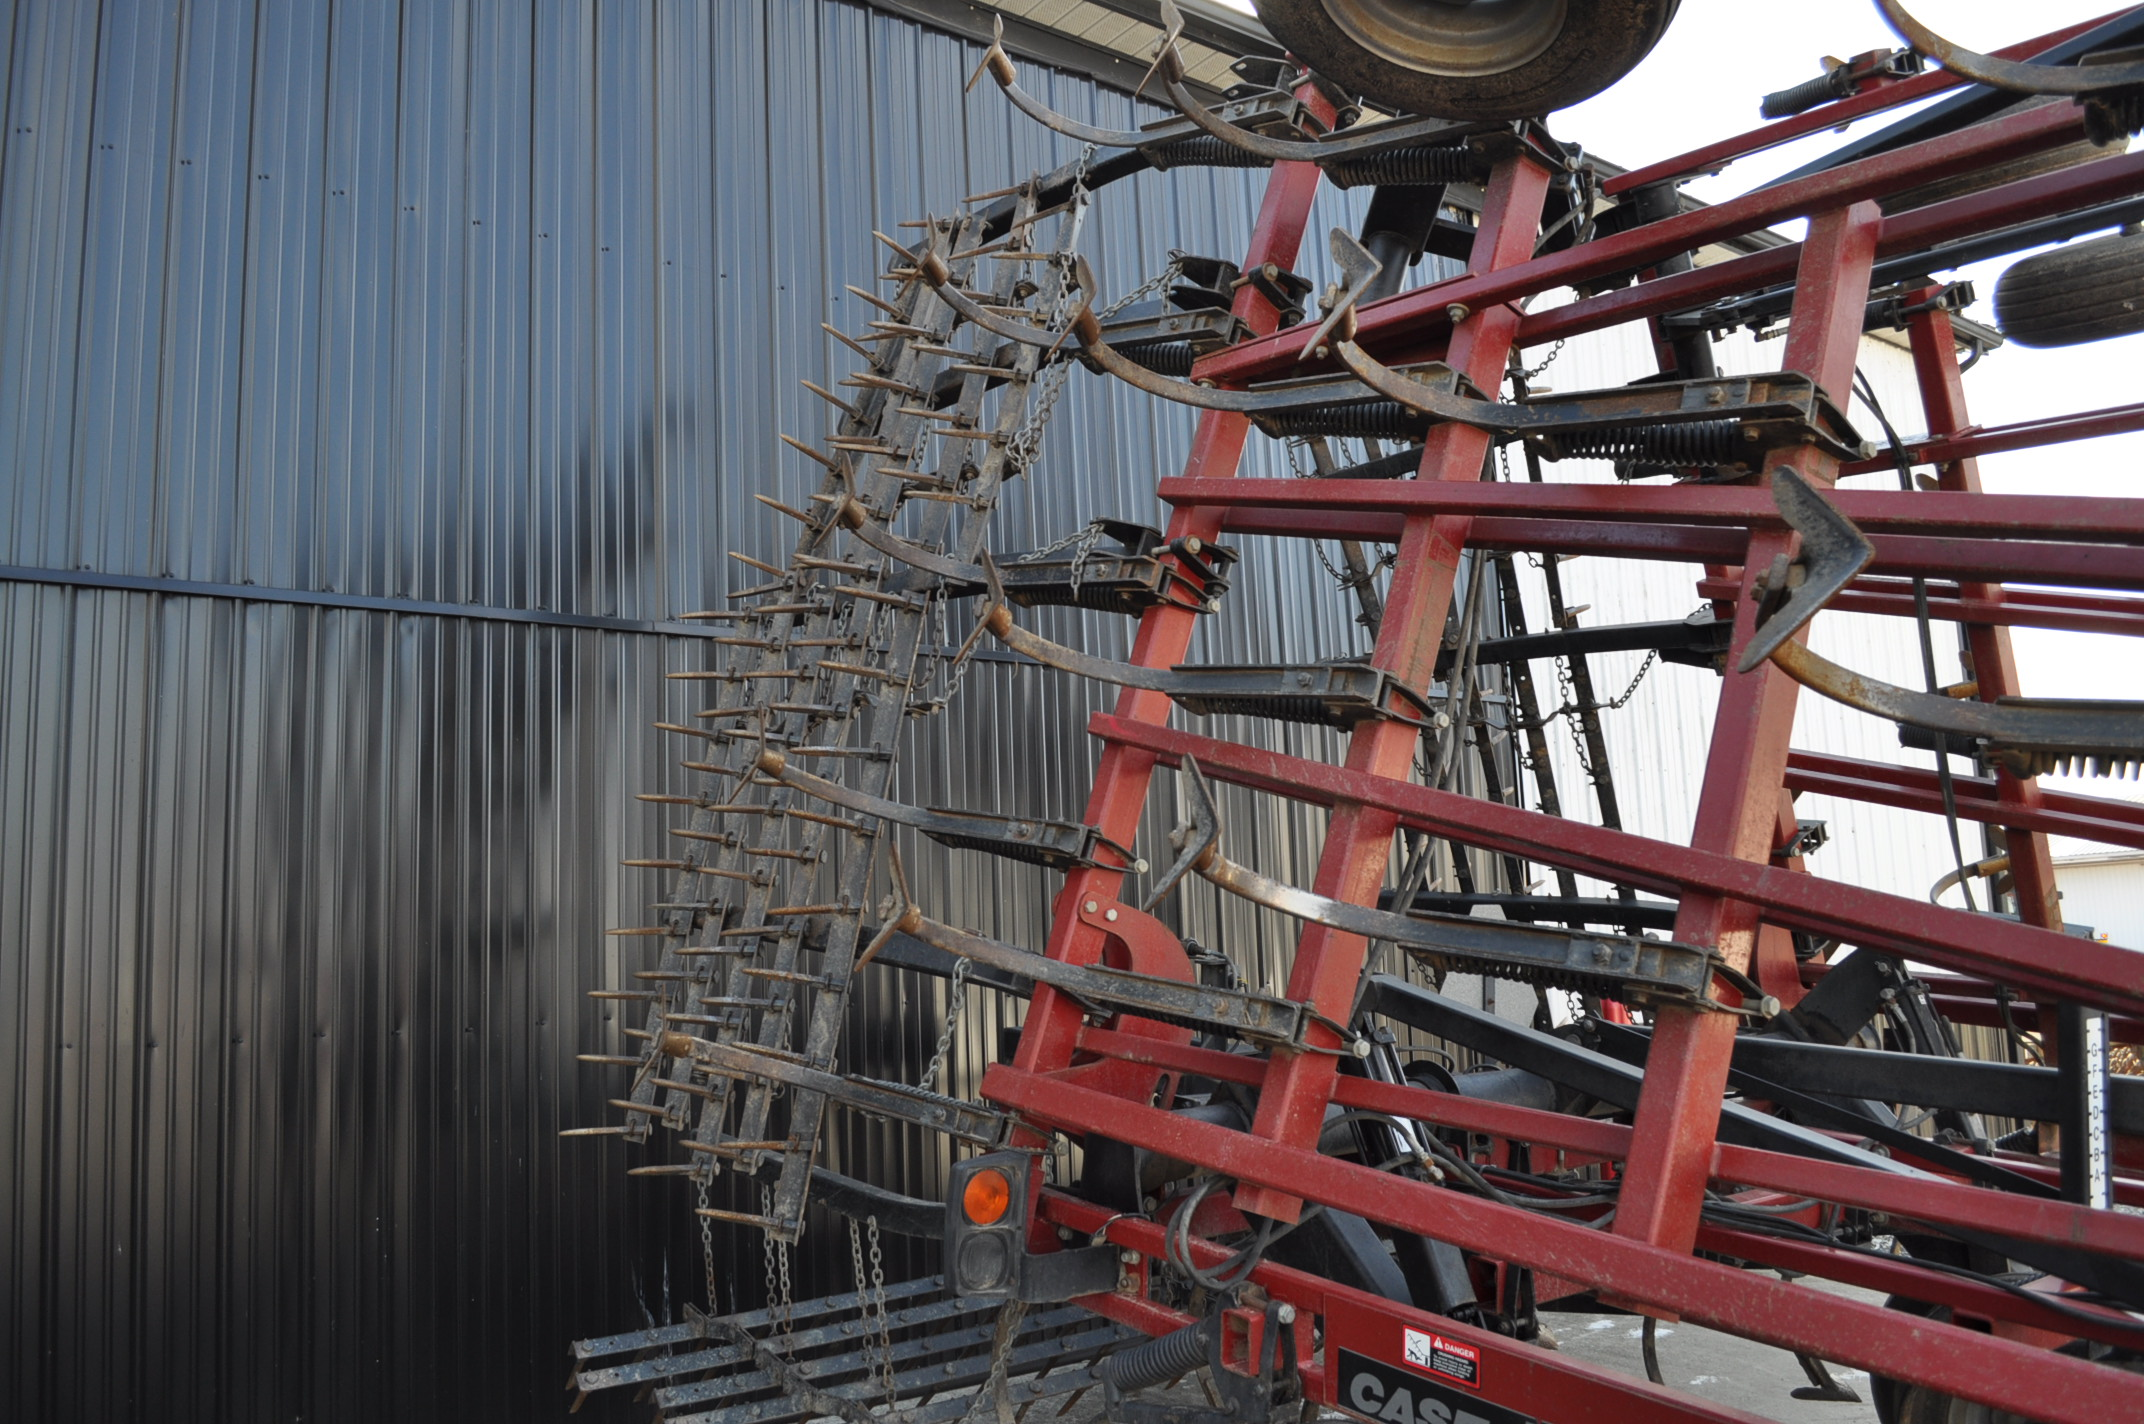 30' Case IH TigerMate II field cultivator, walking tandems, 5 bar spike tooth harrow, rear hitch and - Image 8 of 12